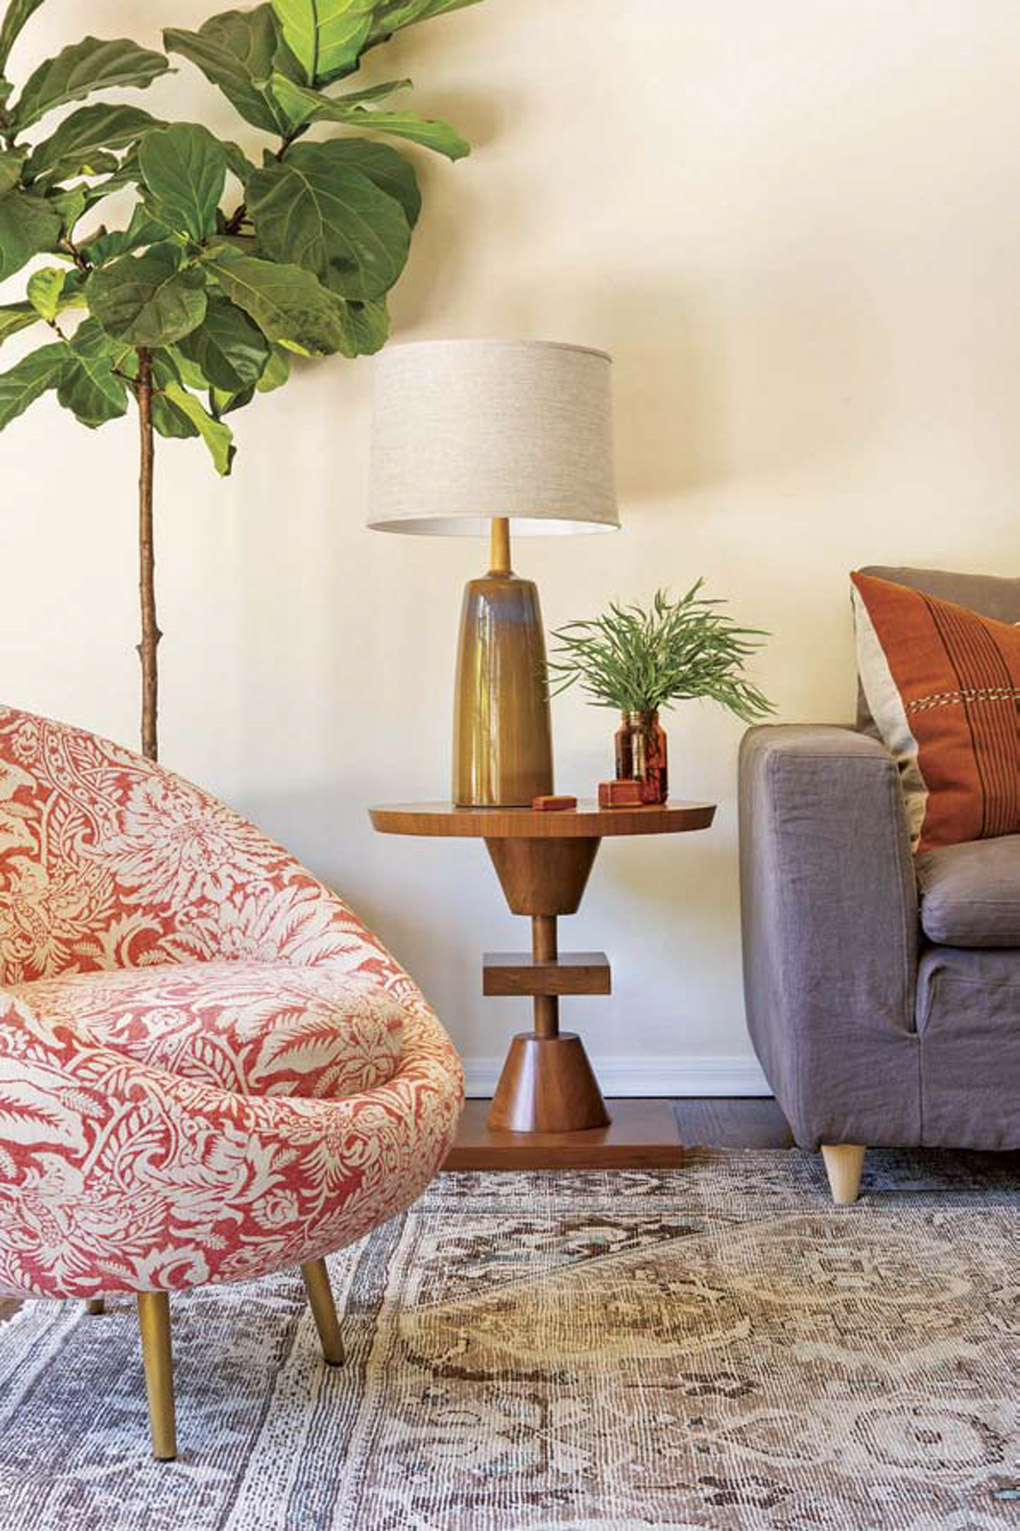 Modern side table made of walnut topped with a lamp and fresh greenery, next to a barrel-rolled floral chair and a gray couch.